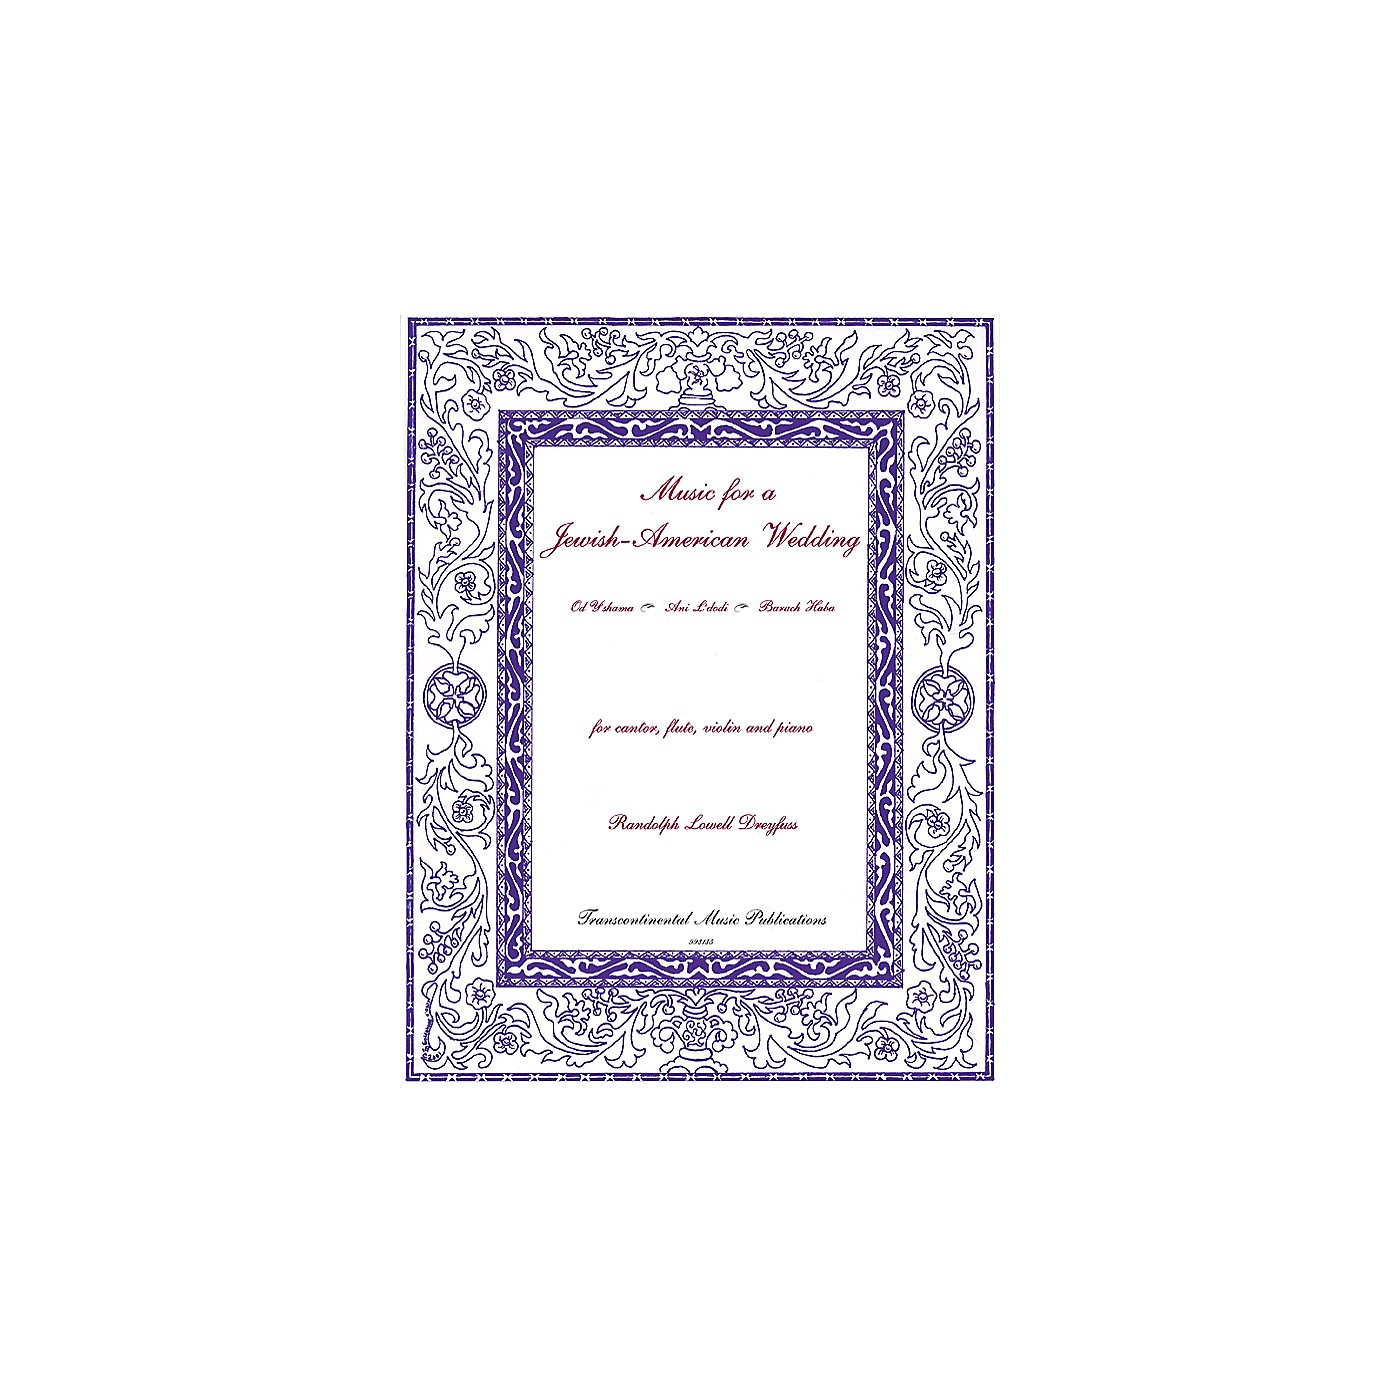 Transcontinental Music Music for a Jewish-American Wedding Transcontinental Music Folios Series by Randolph Lowell Dreyfus thumbnail